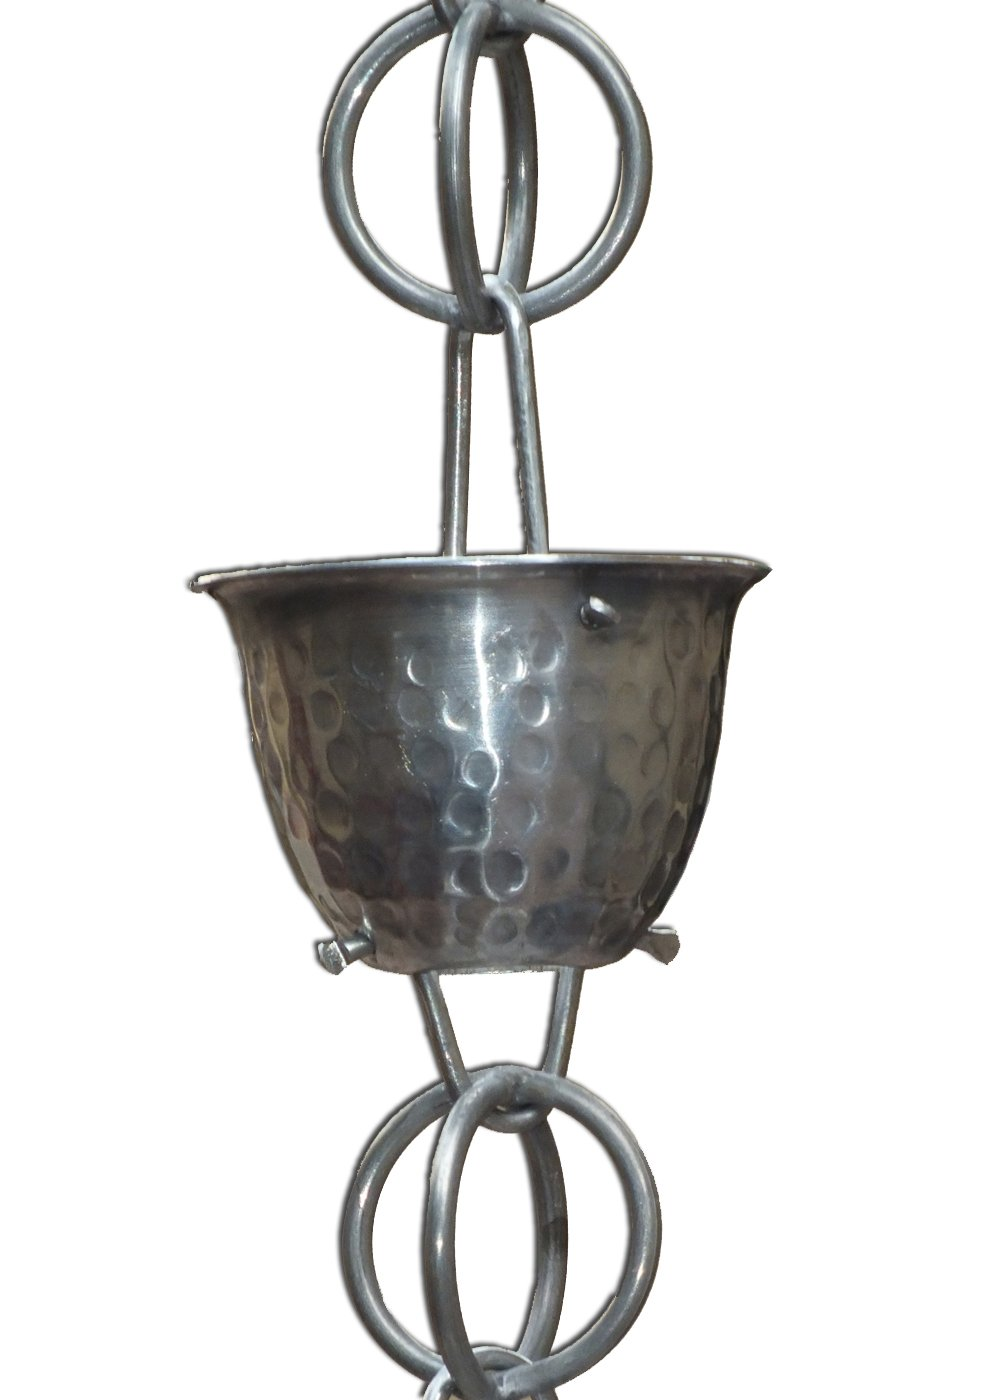 Monarch Aluminum Hammered Cup Rain Chain, 8-1/2 Feet Length (Mill Finish)